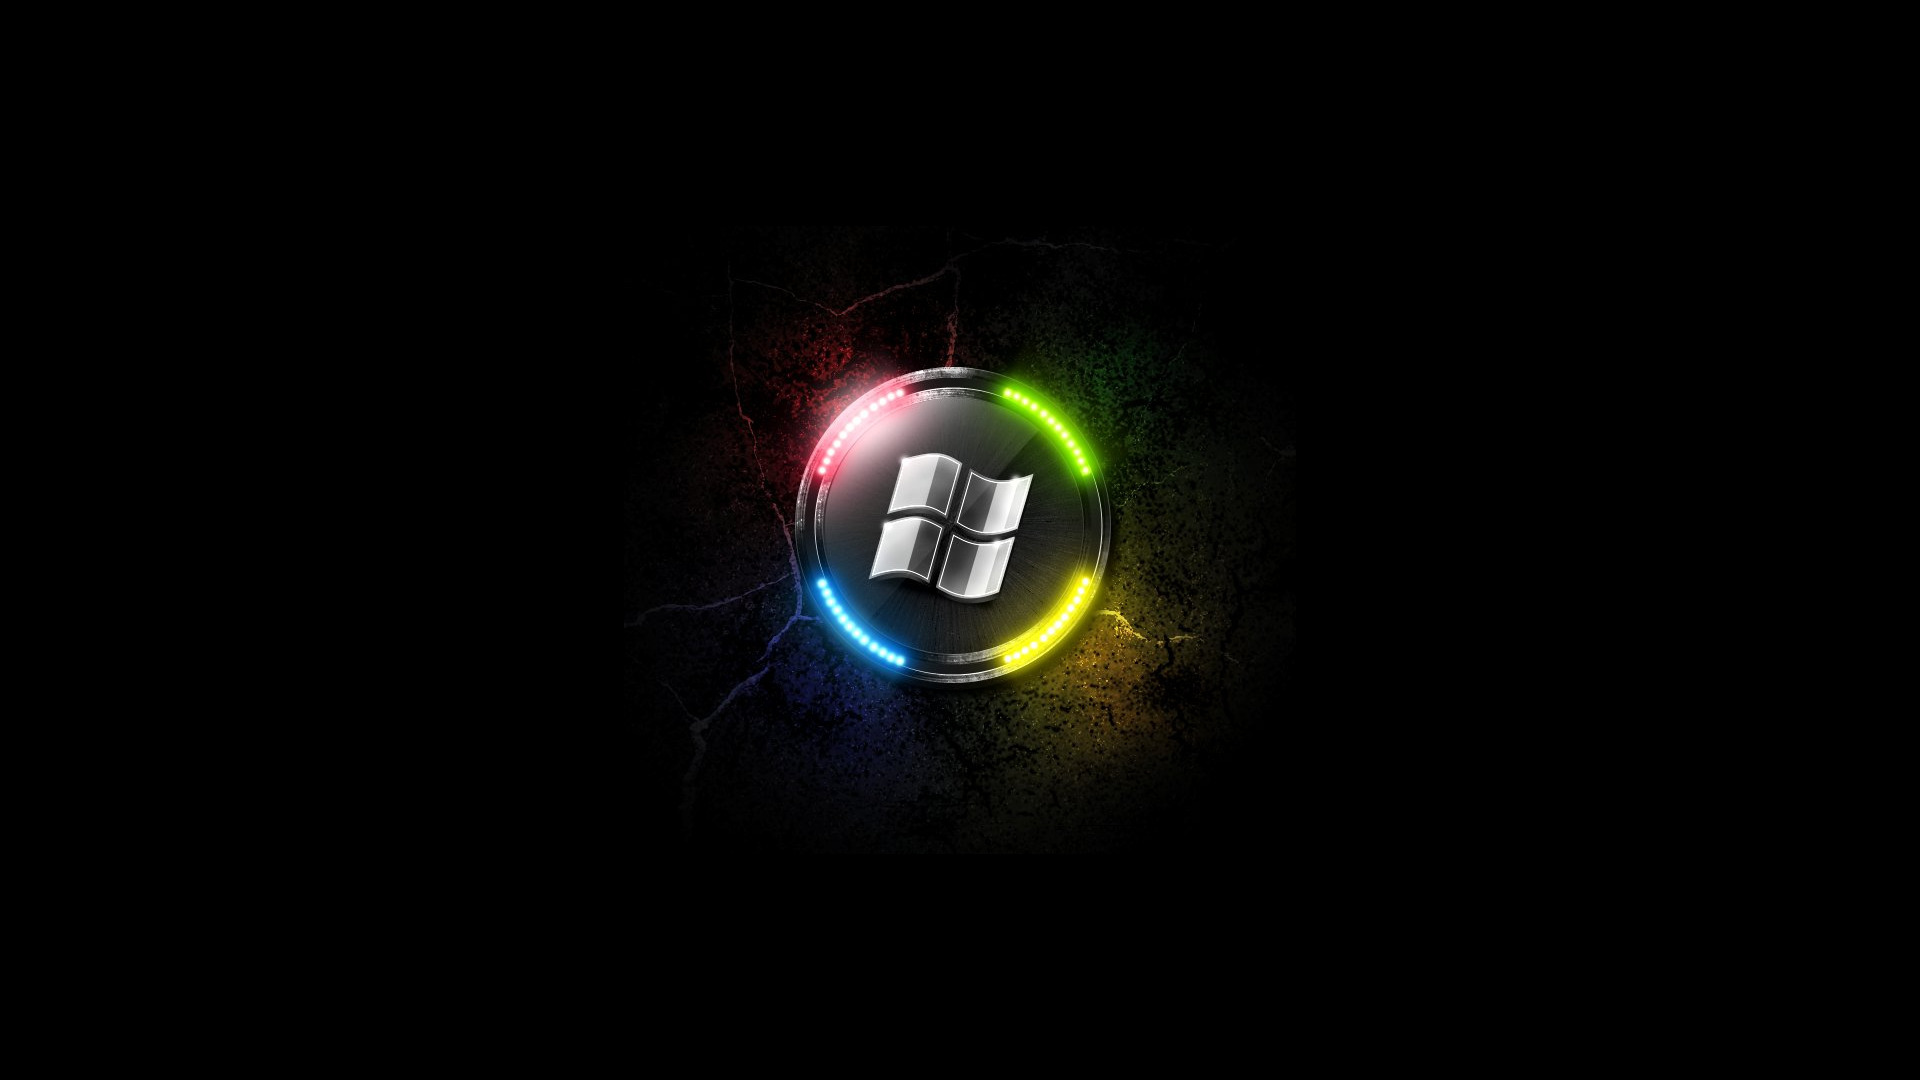 Windows 7 Wallpapers HD 1080p Group (87+)